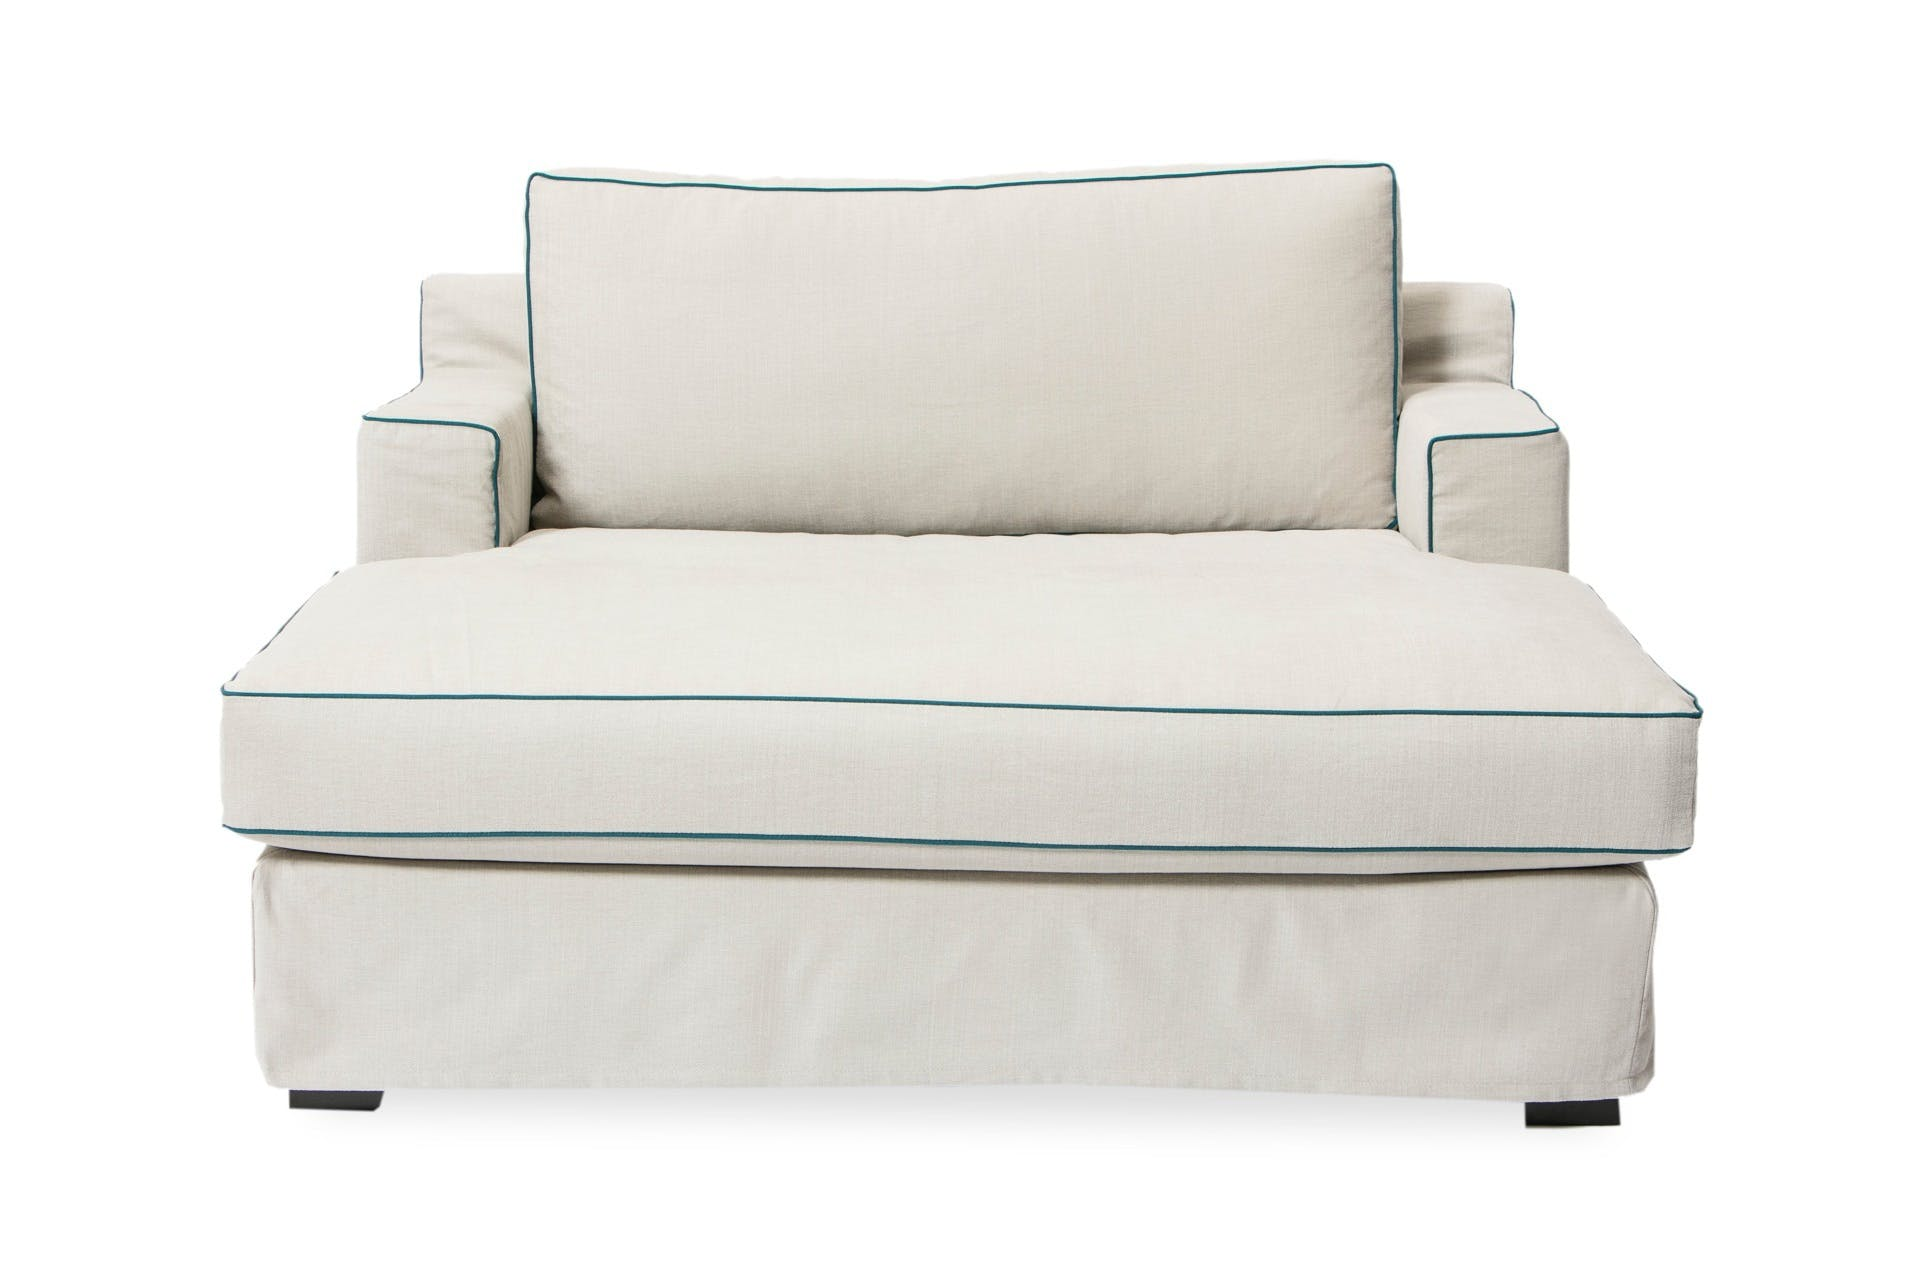 Take It Easy 2 Paola Navone Low